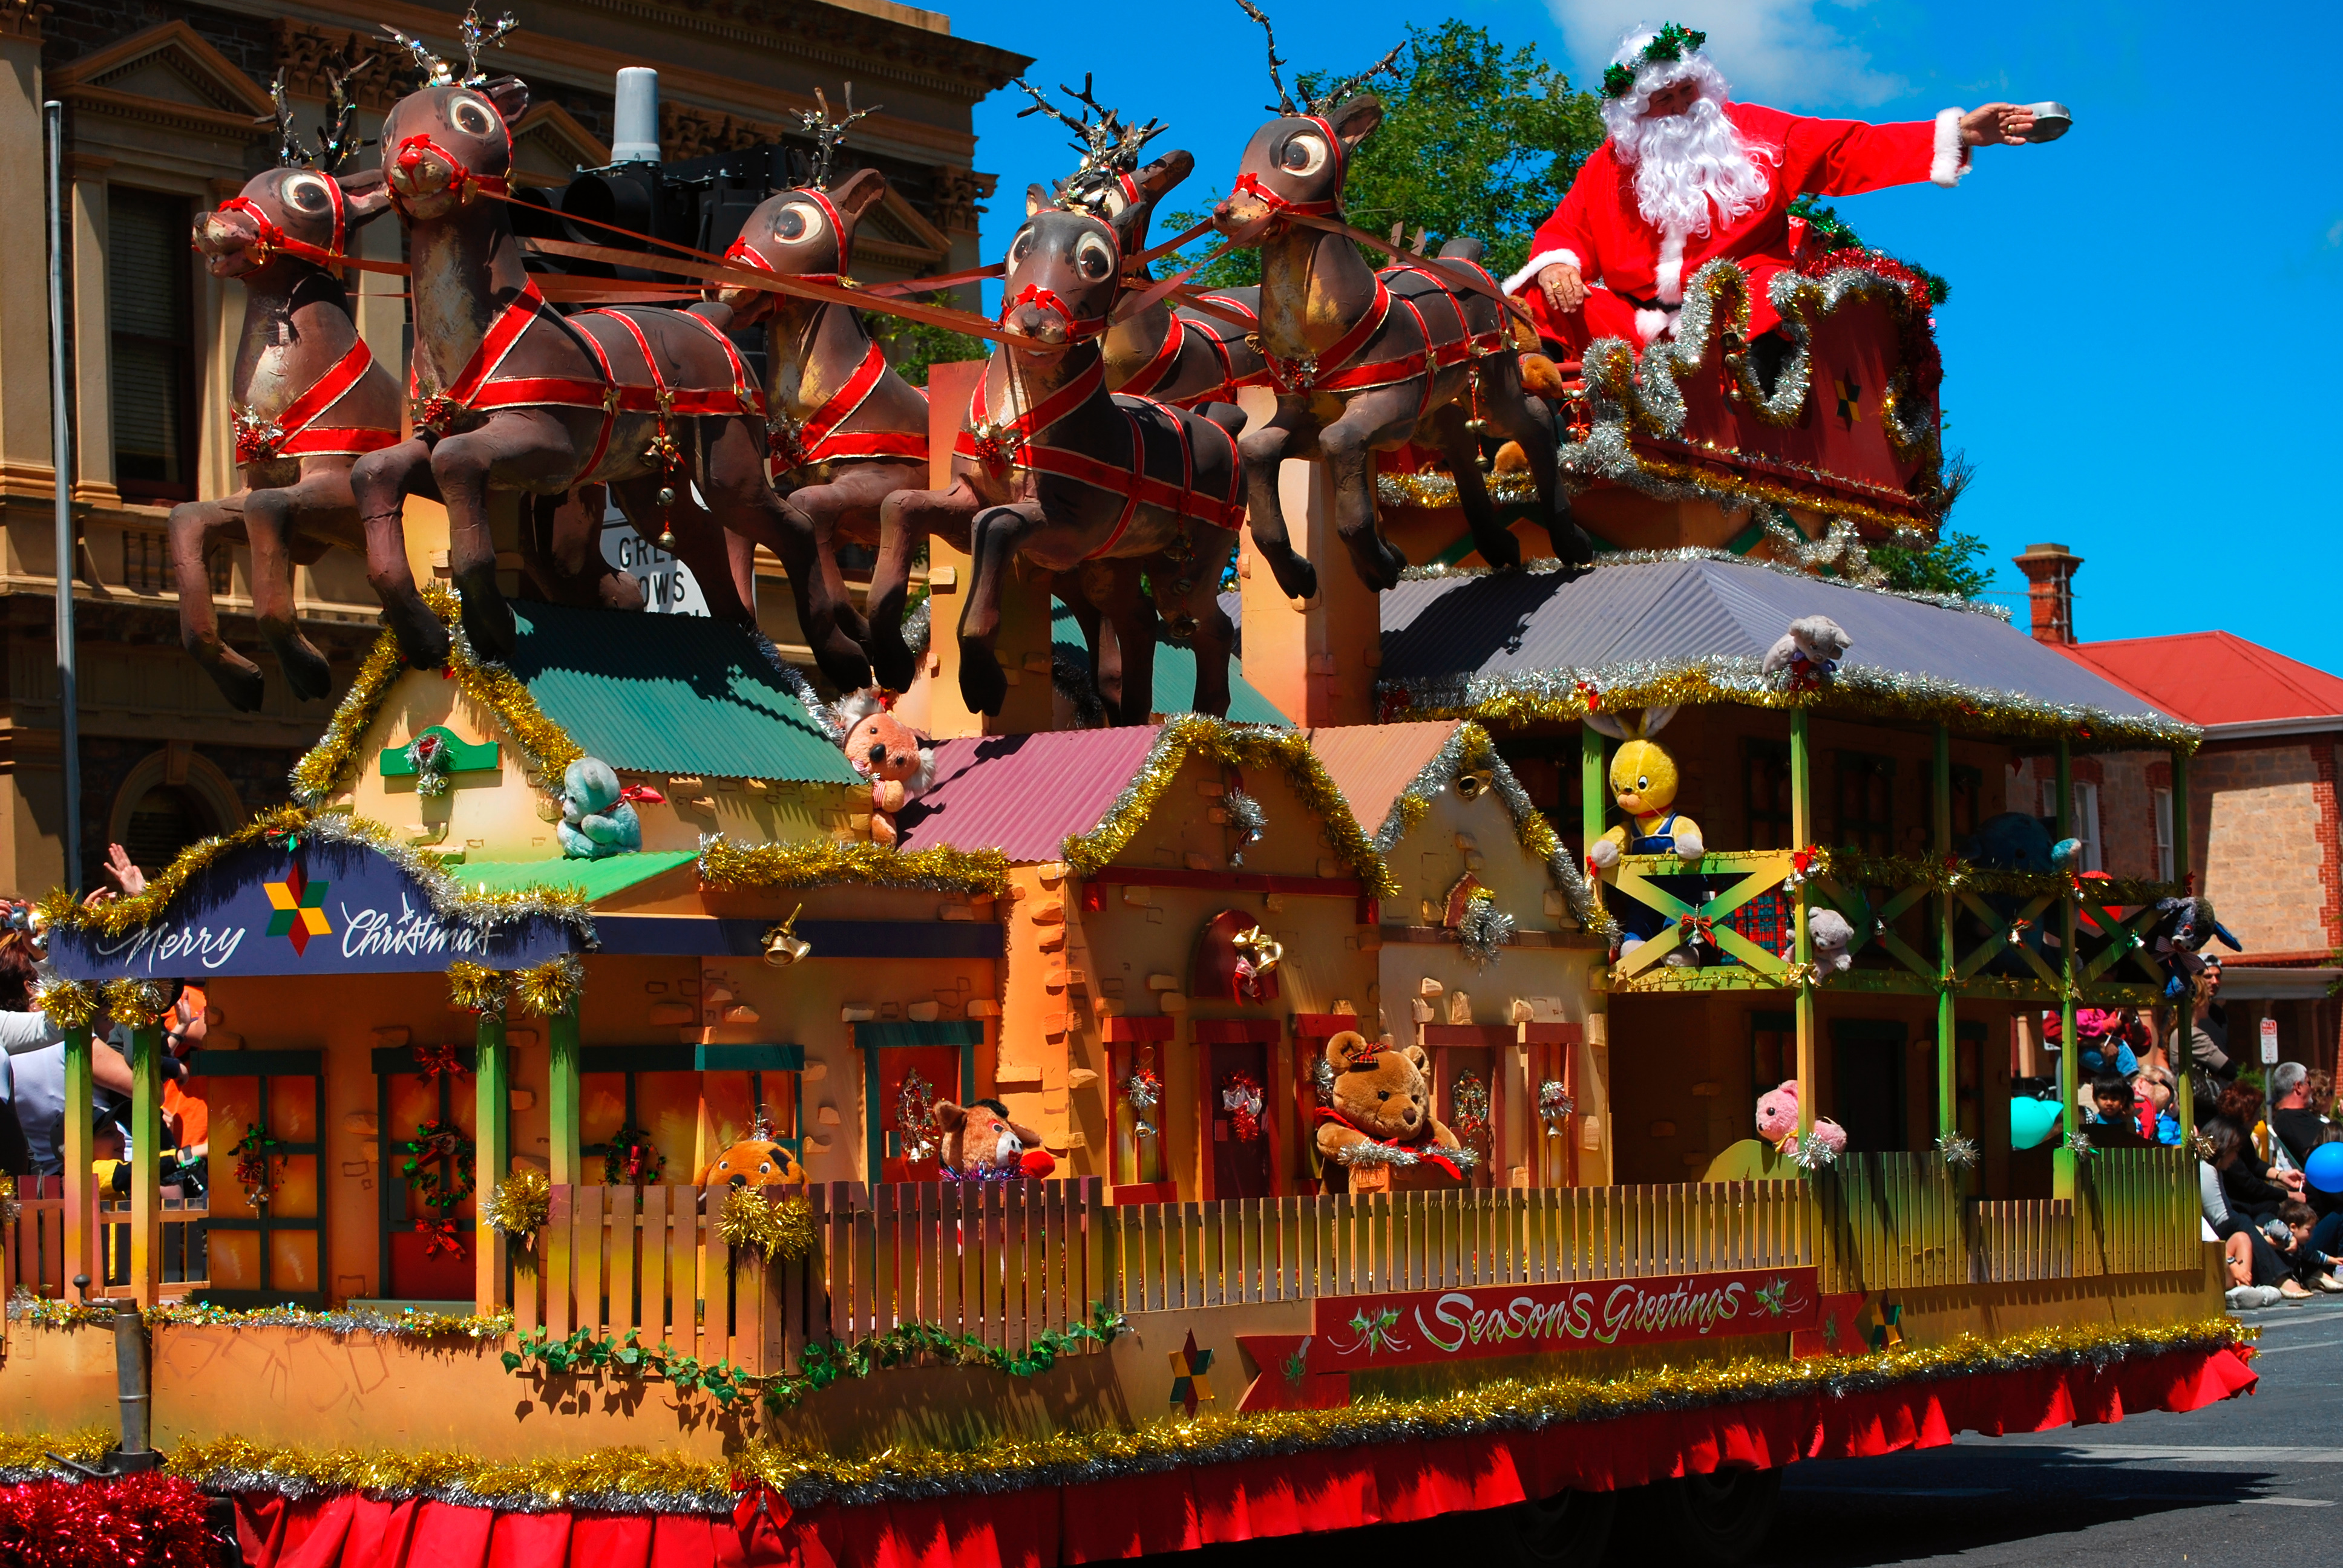 http://upload.wikimedia.org/wikipedia/commons/a/a0/Father_christmas_float_-_2008_norwood_christmas_pageant.jpg